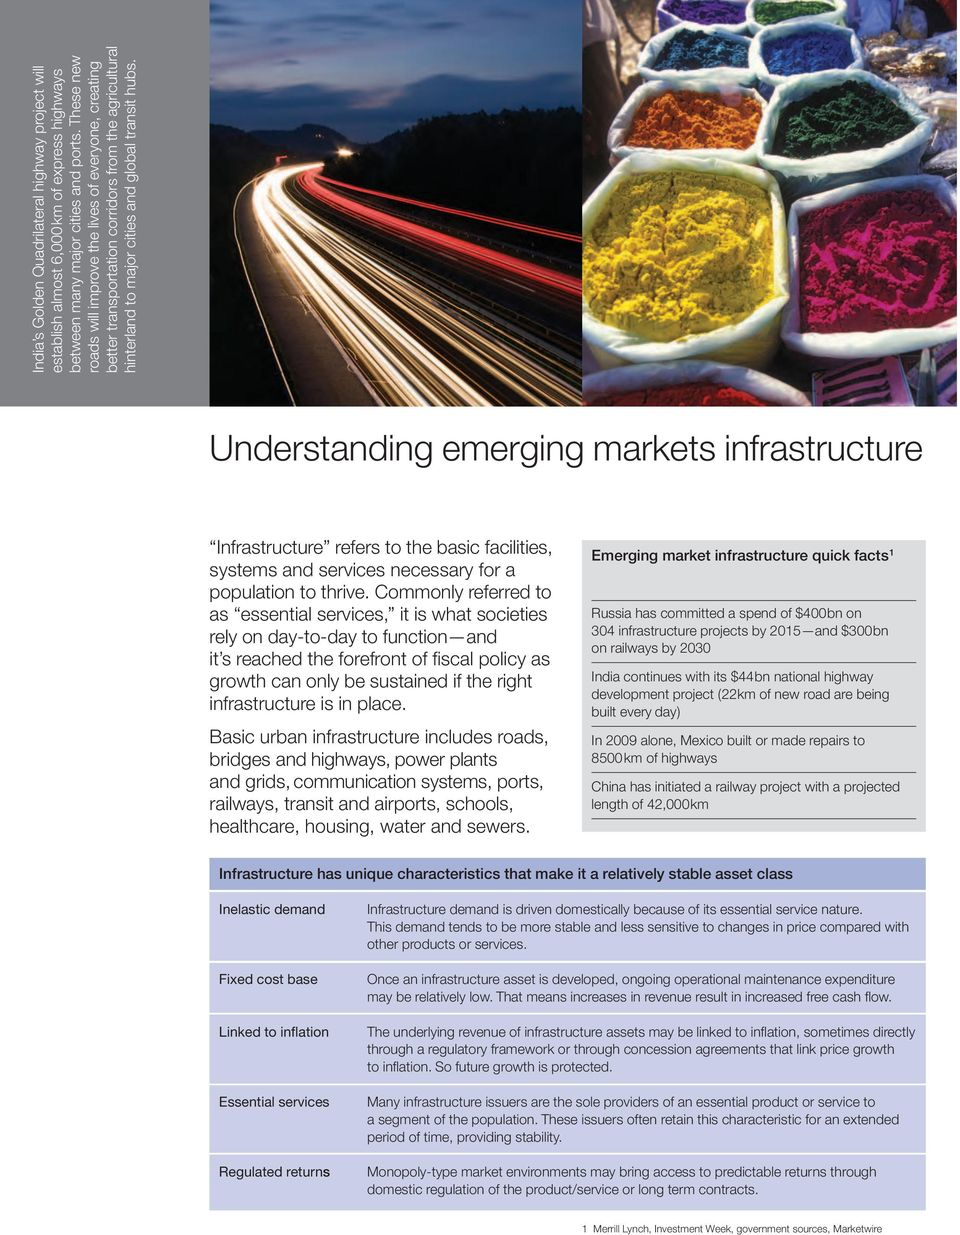 Understanding emerging markets infrastructure Infrastructure refers to the basic facilities, systems and services necessary for a population to thrive.